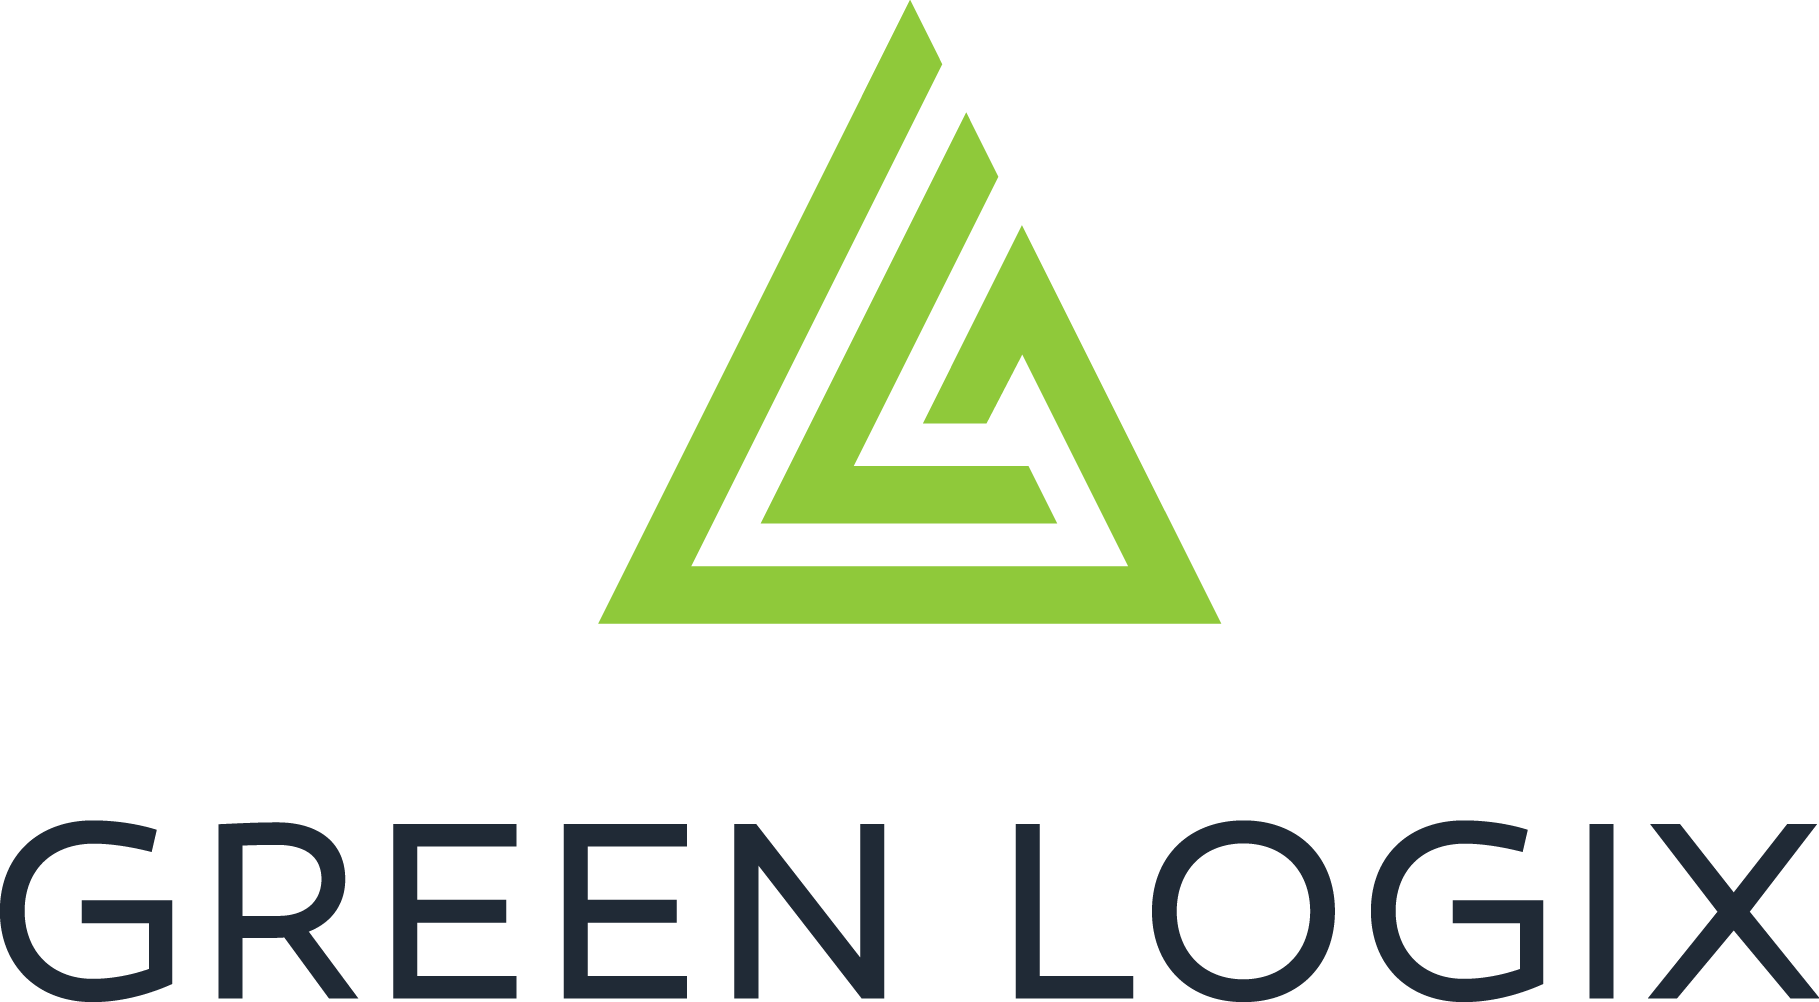 Design a great new logo for our Company, GreenLogix